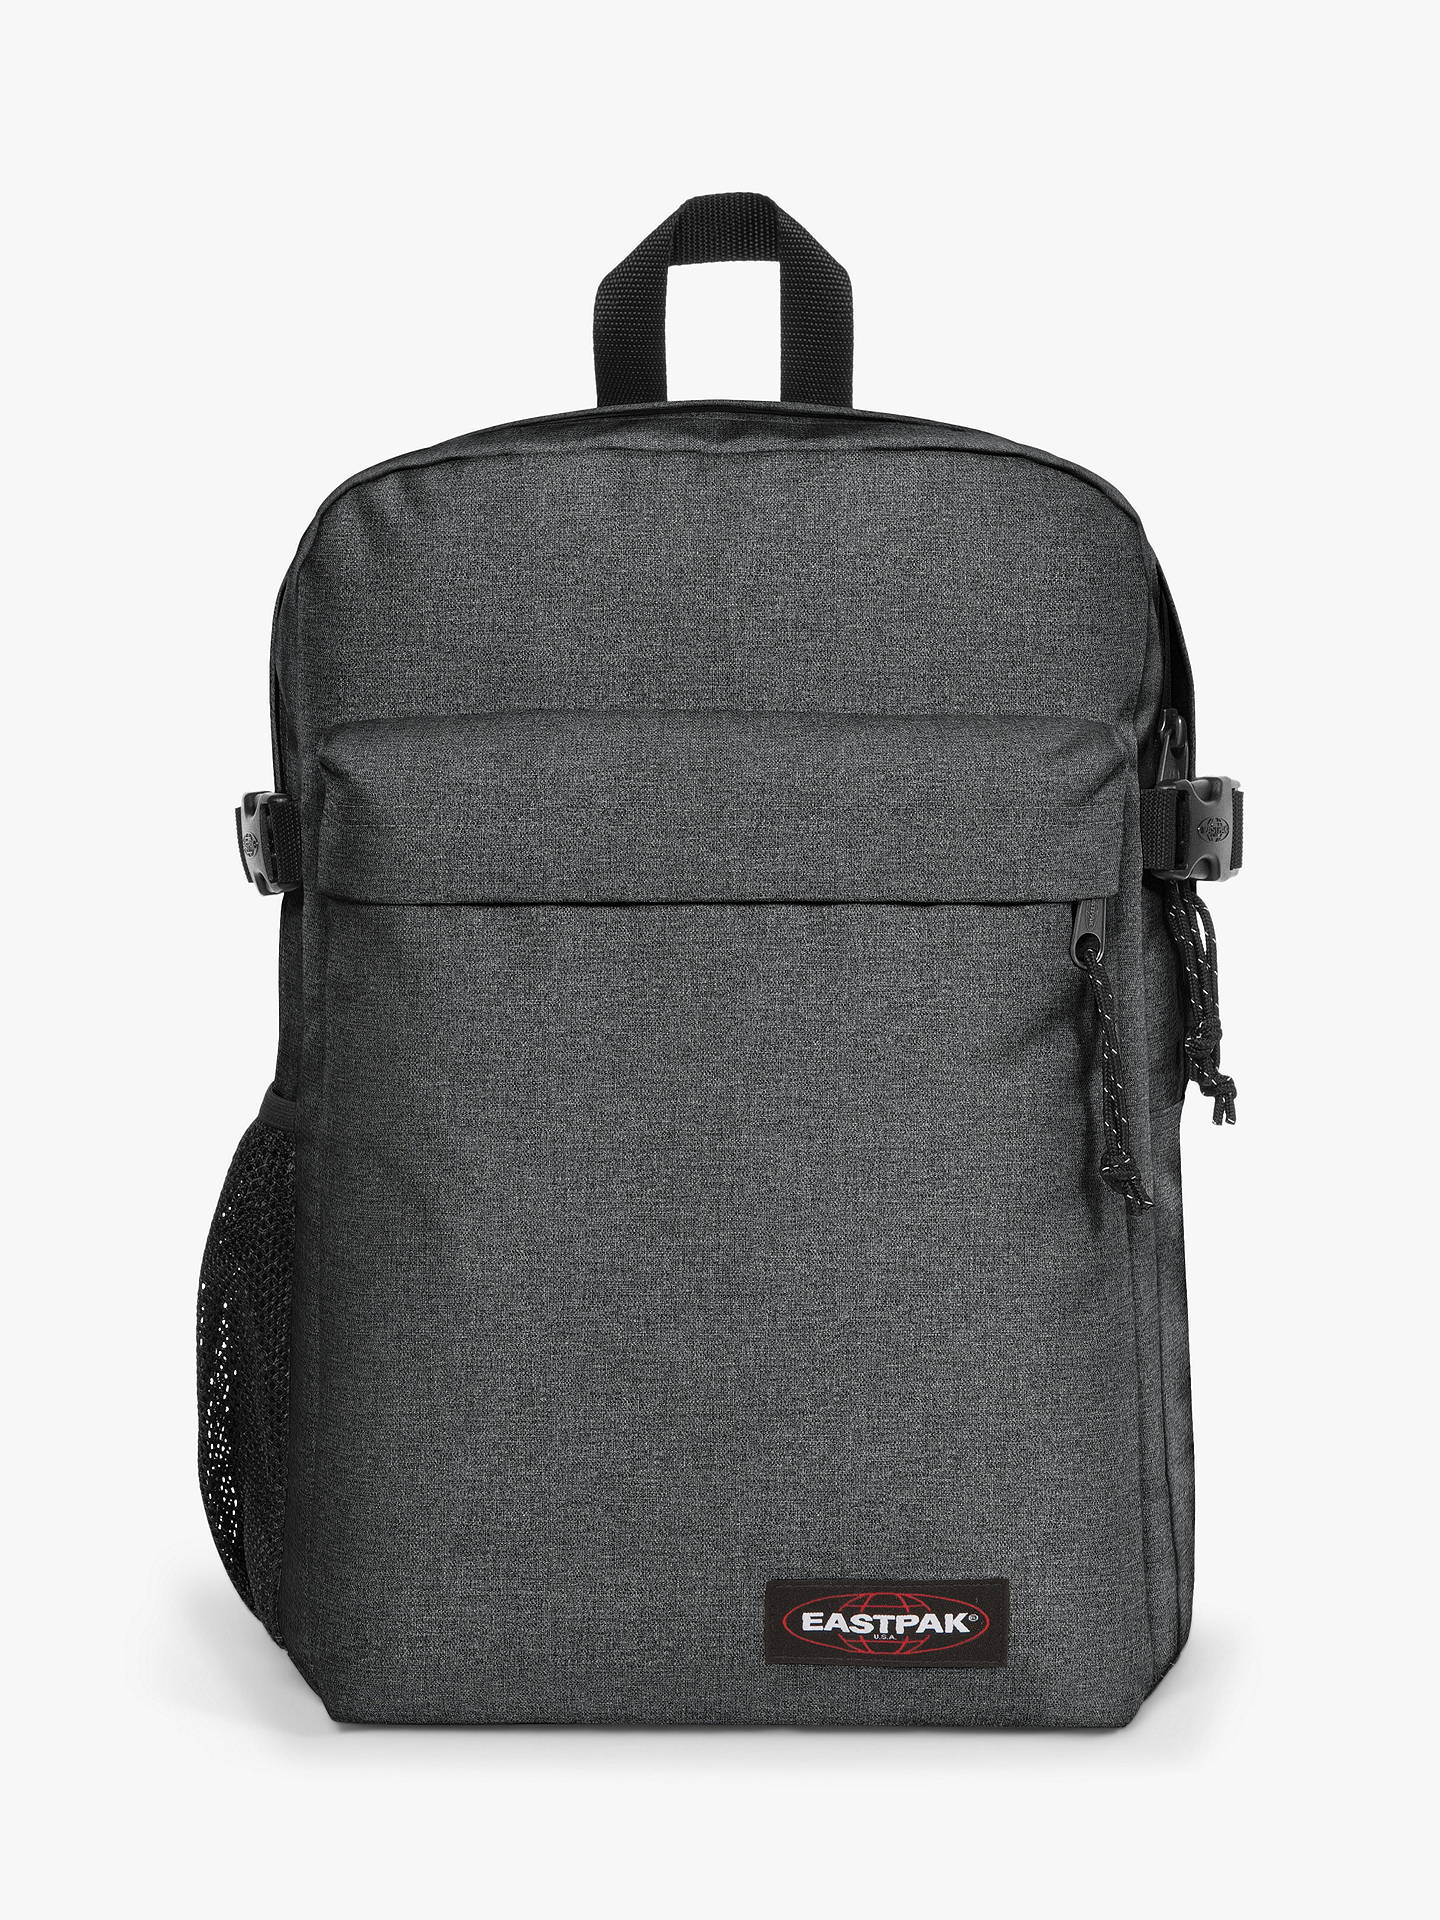 BuyEastpak Standler Backpack 0a437d0a99bf5